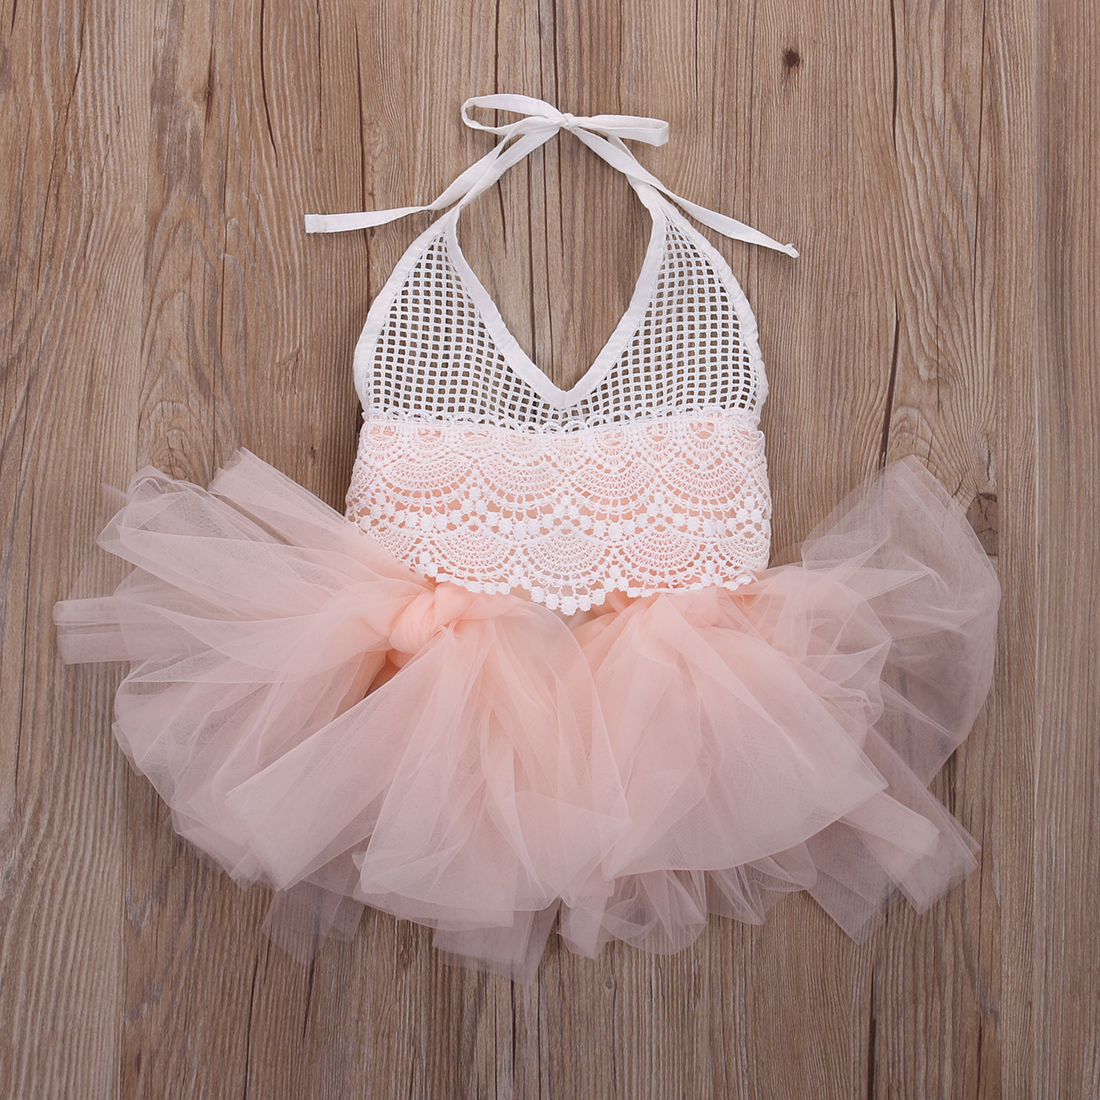 Toddler Baby Boy Romper Newborn Baby Girls Clothes Princess Pink Bow Lace Cartoon ropa bebe Infant Costumes Baby Girl Clothing hhtu 2017 infant romper baby boys girls jumpsuit newborn clothing hooded toddler baby clothes cute elk romper baby costumes